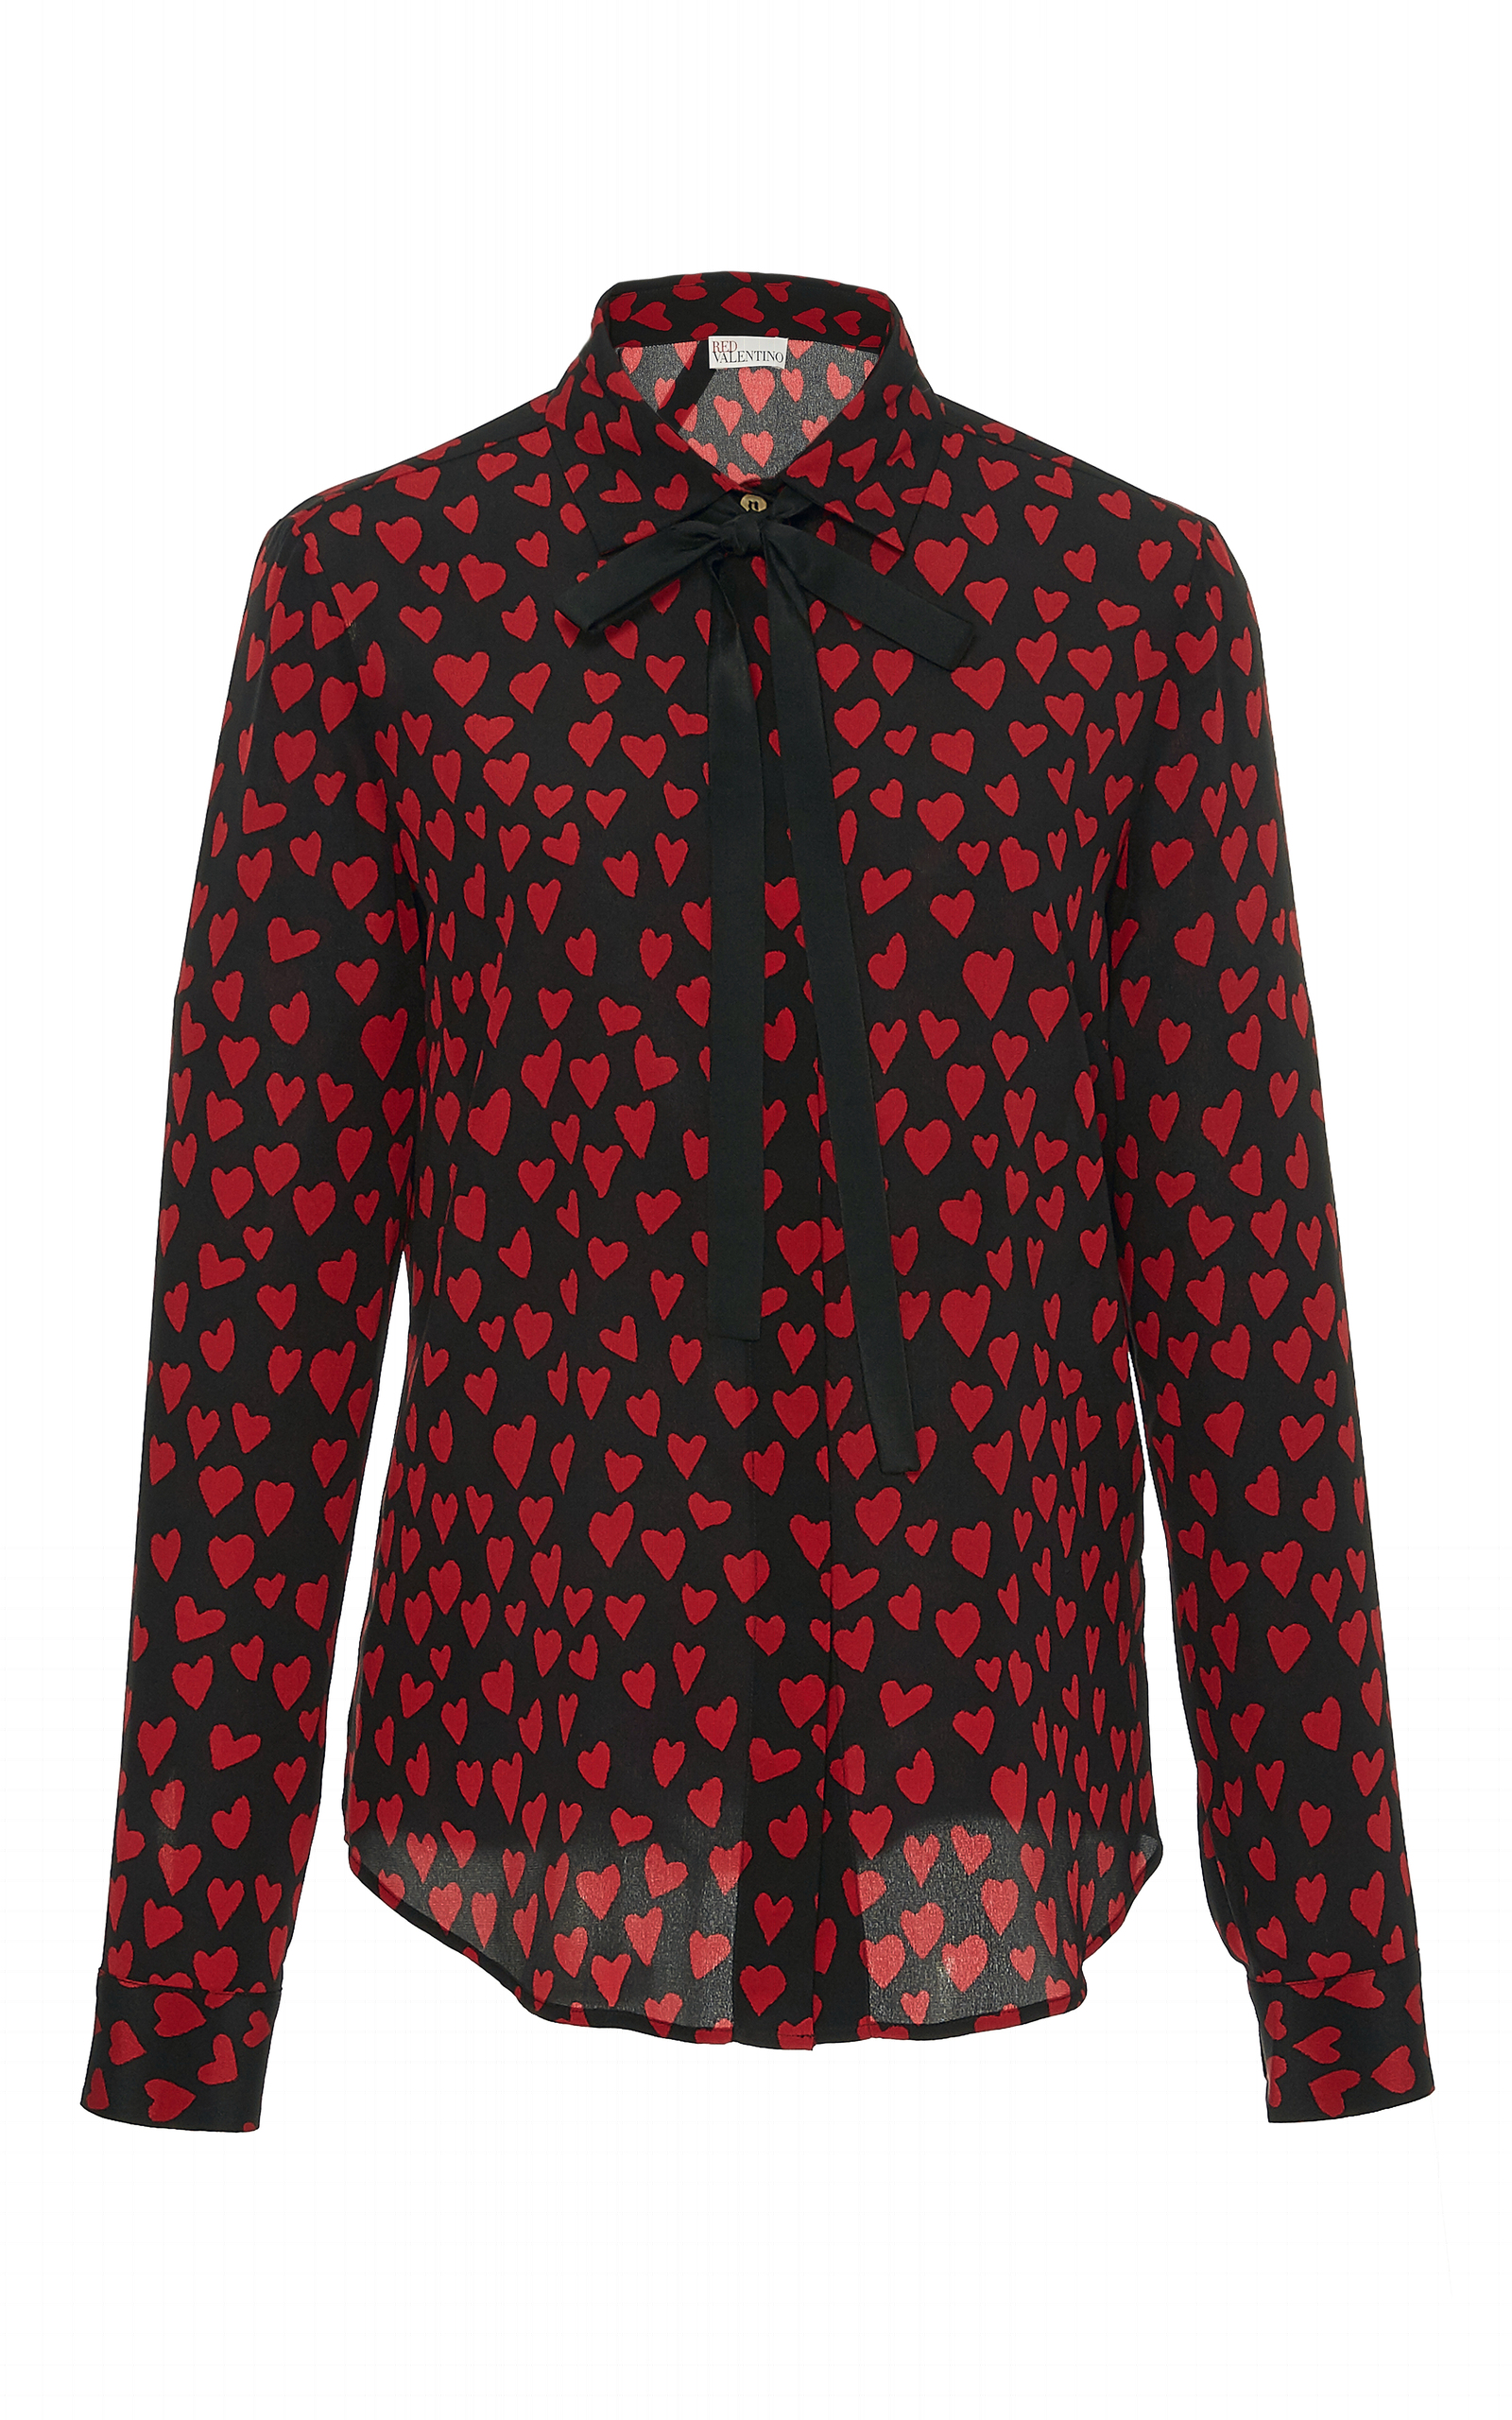 7c7c20a74ab28 Red ValentinoSilk Crepe De Chine Heart Print Blouse. CLOSE. Loading